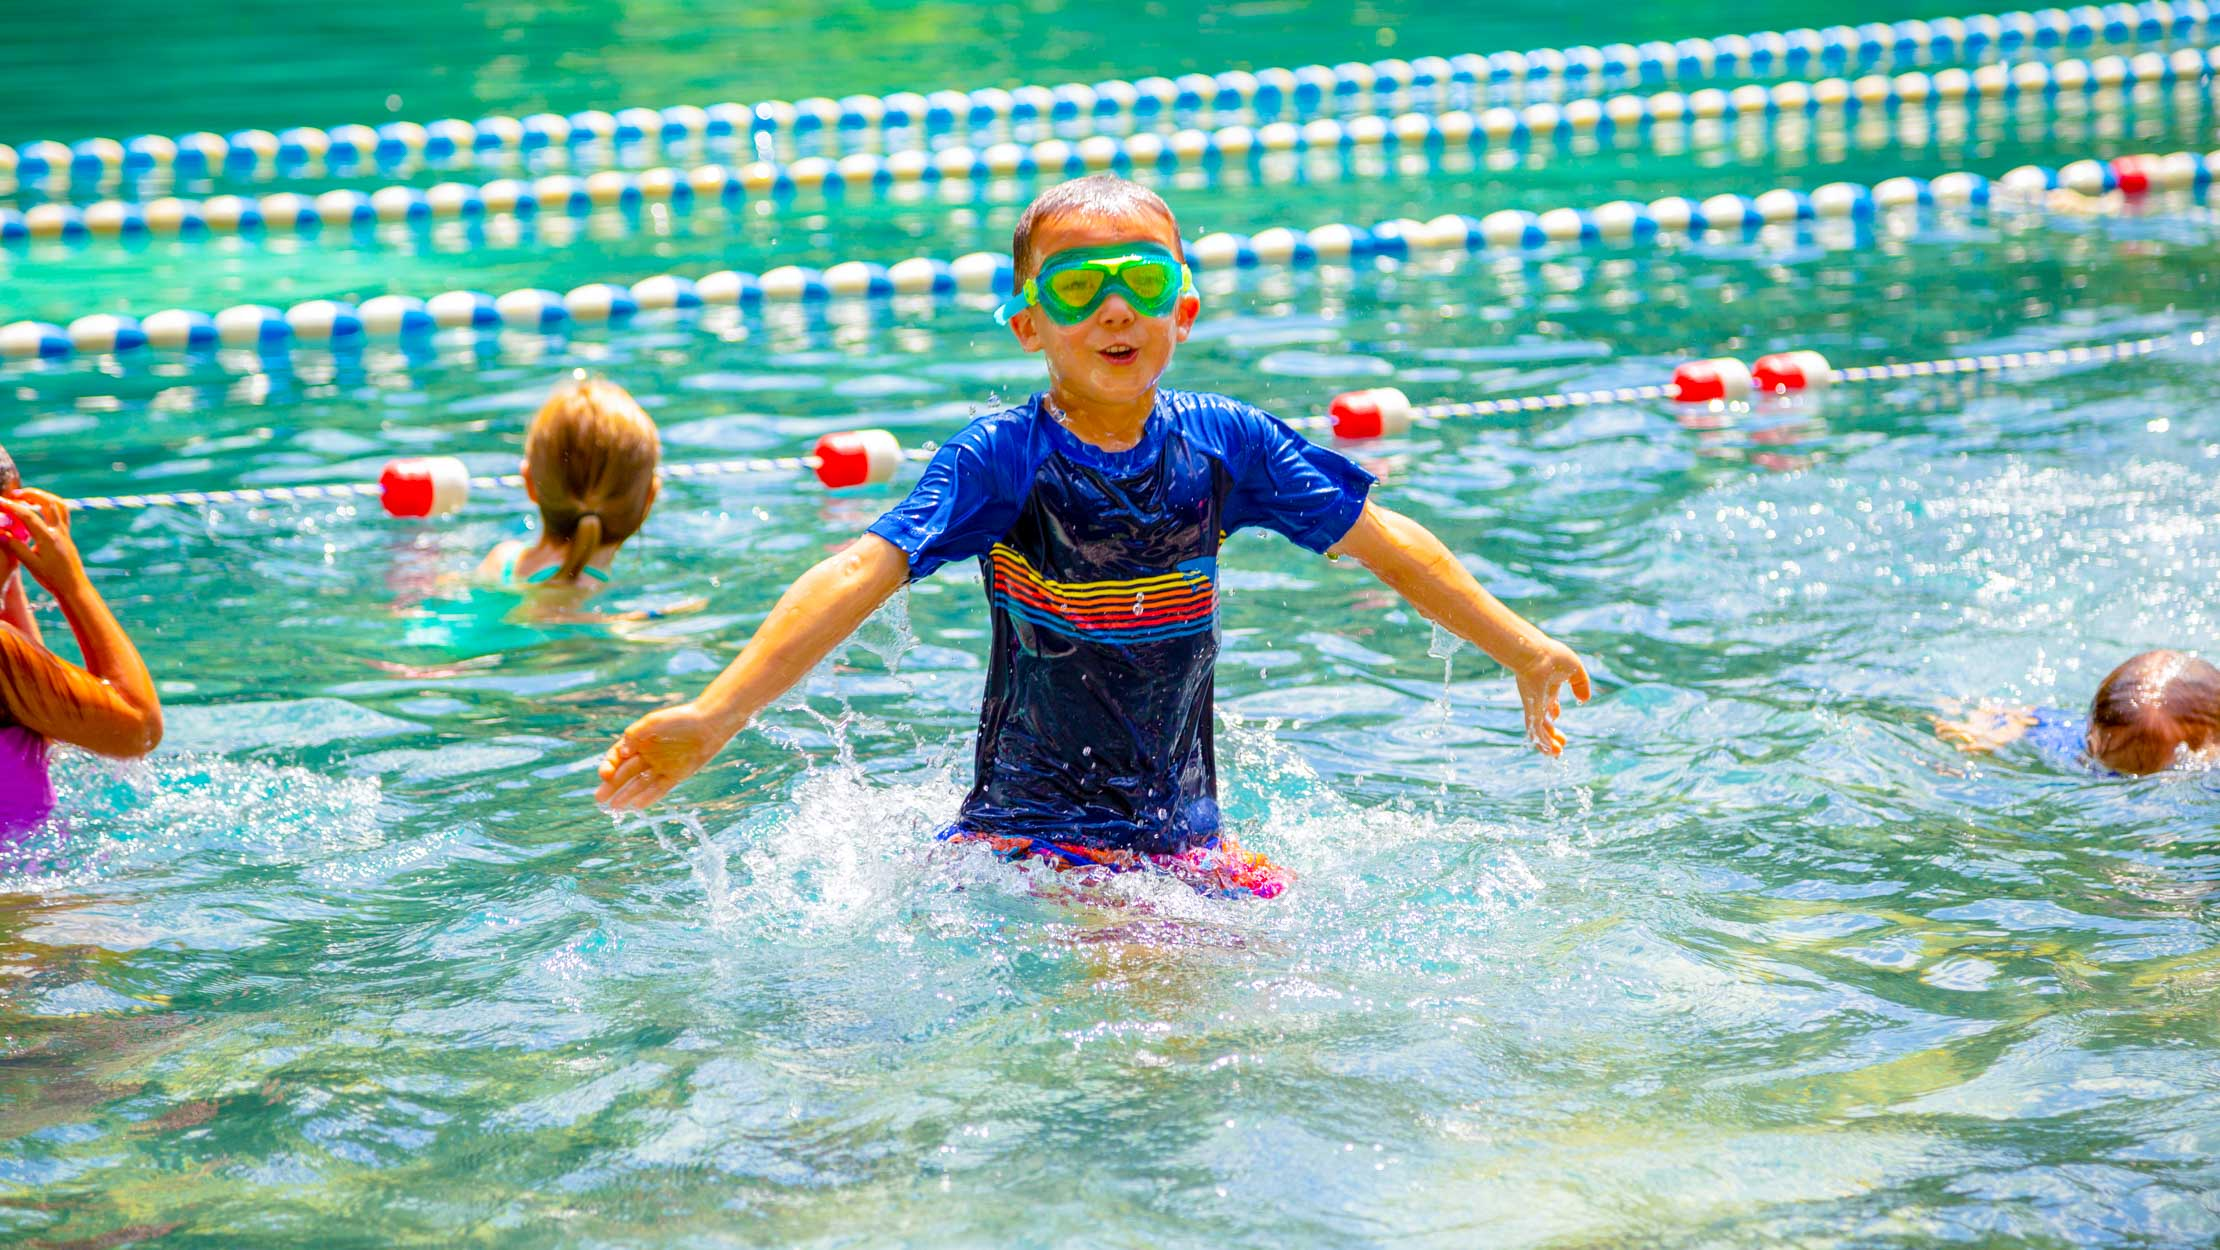 Boy in the pool with goggles